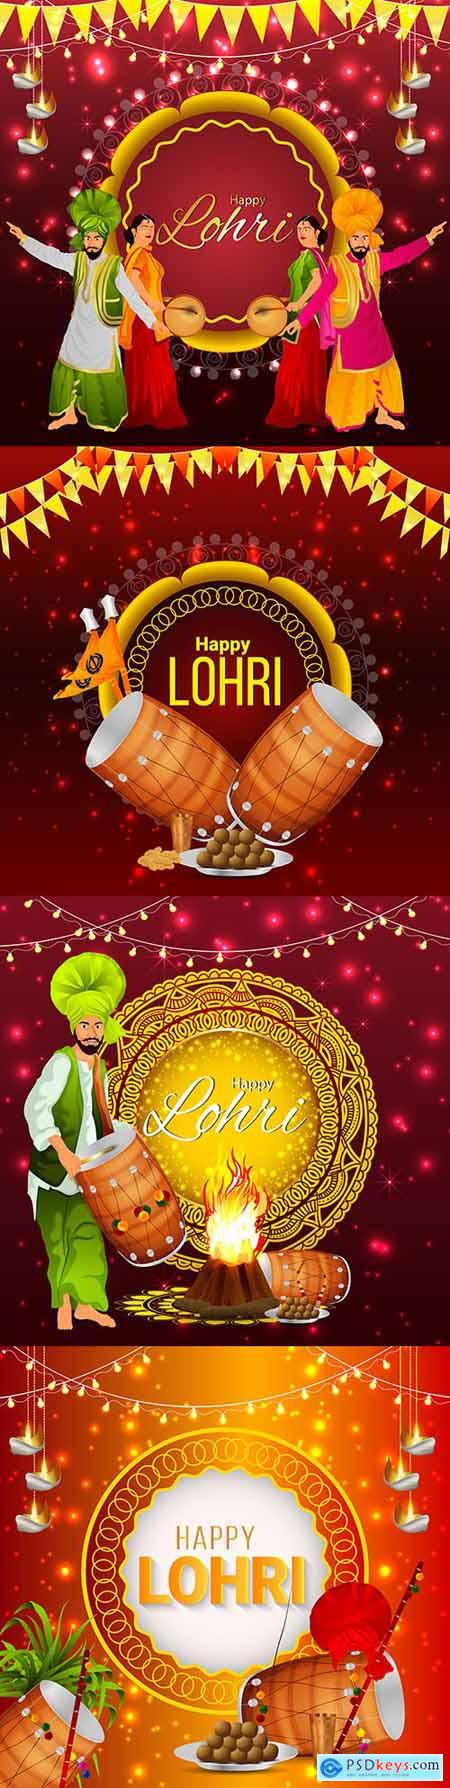 Happy Lohri Indian festival decorative illustration